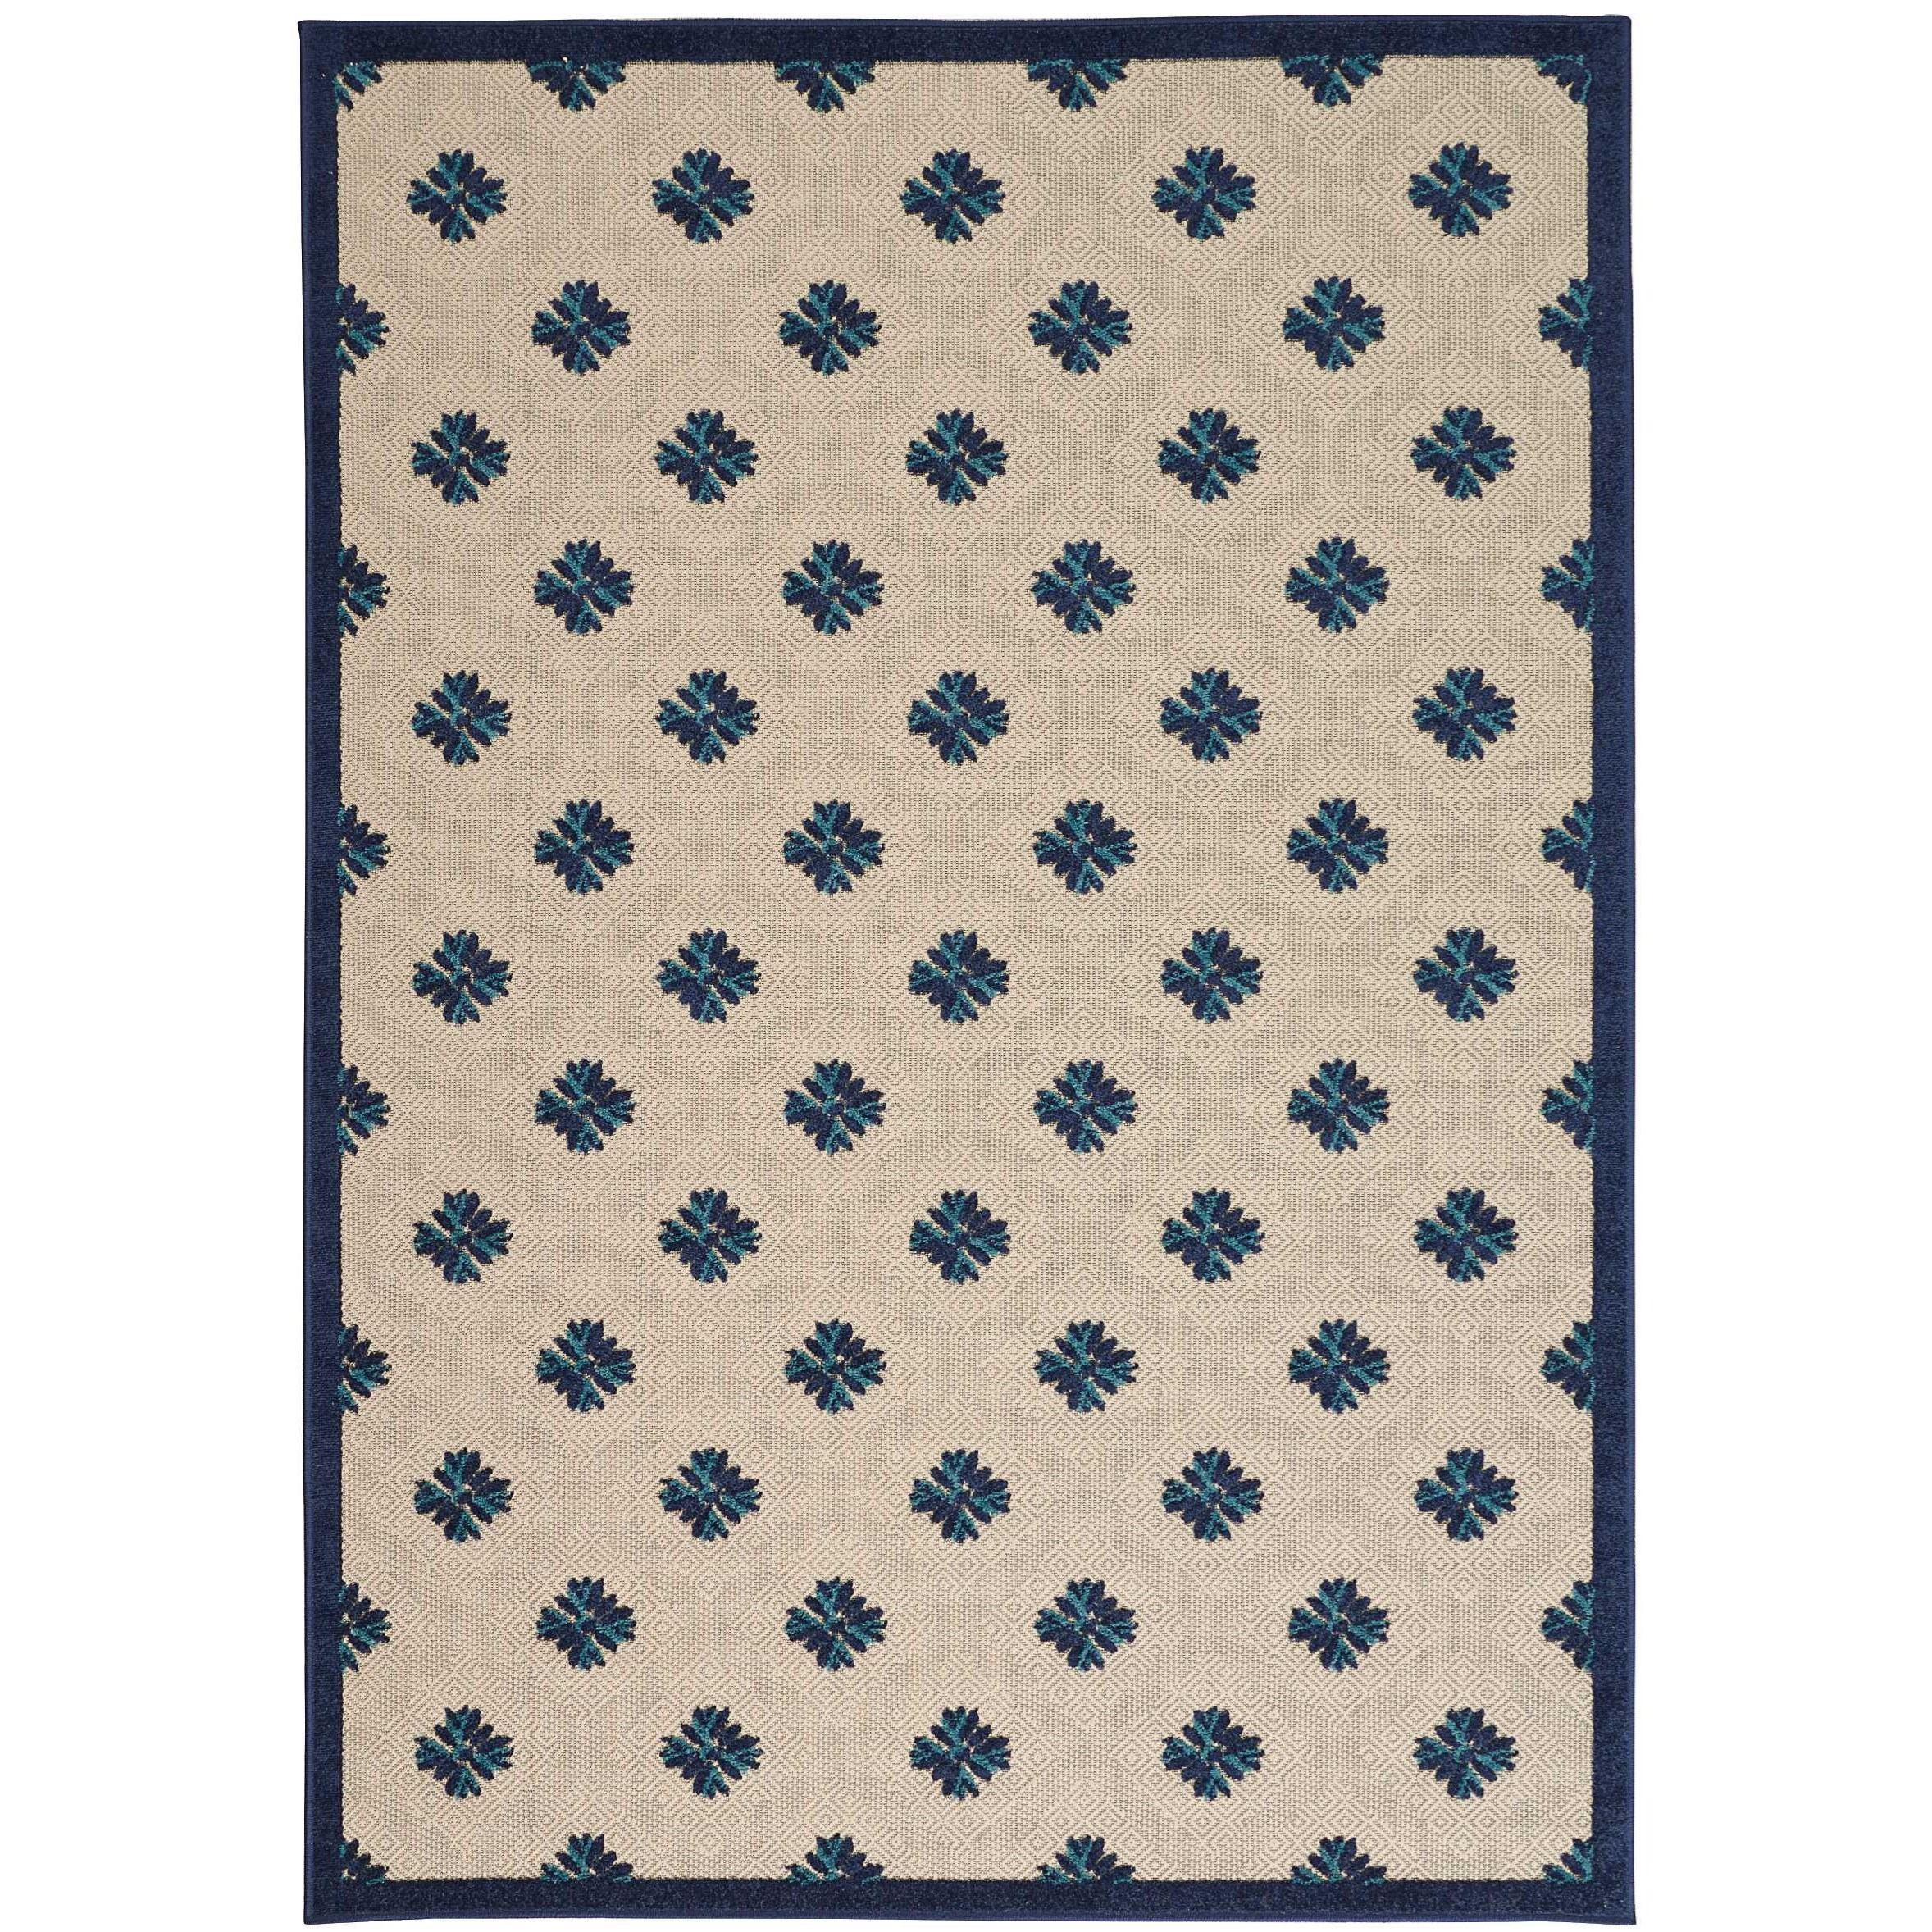 "Aloha 3'6"" x 5'6"" Navy Rectangle Rug by Nourison at Sprintz Furniture"